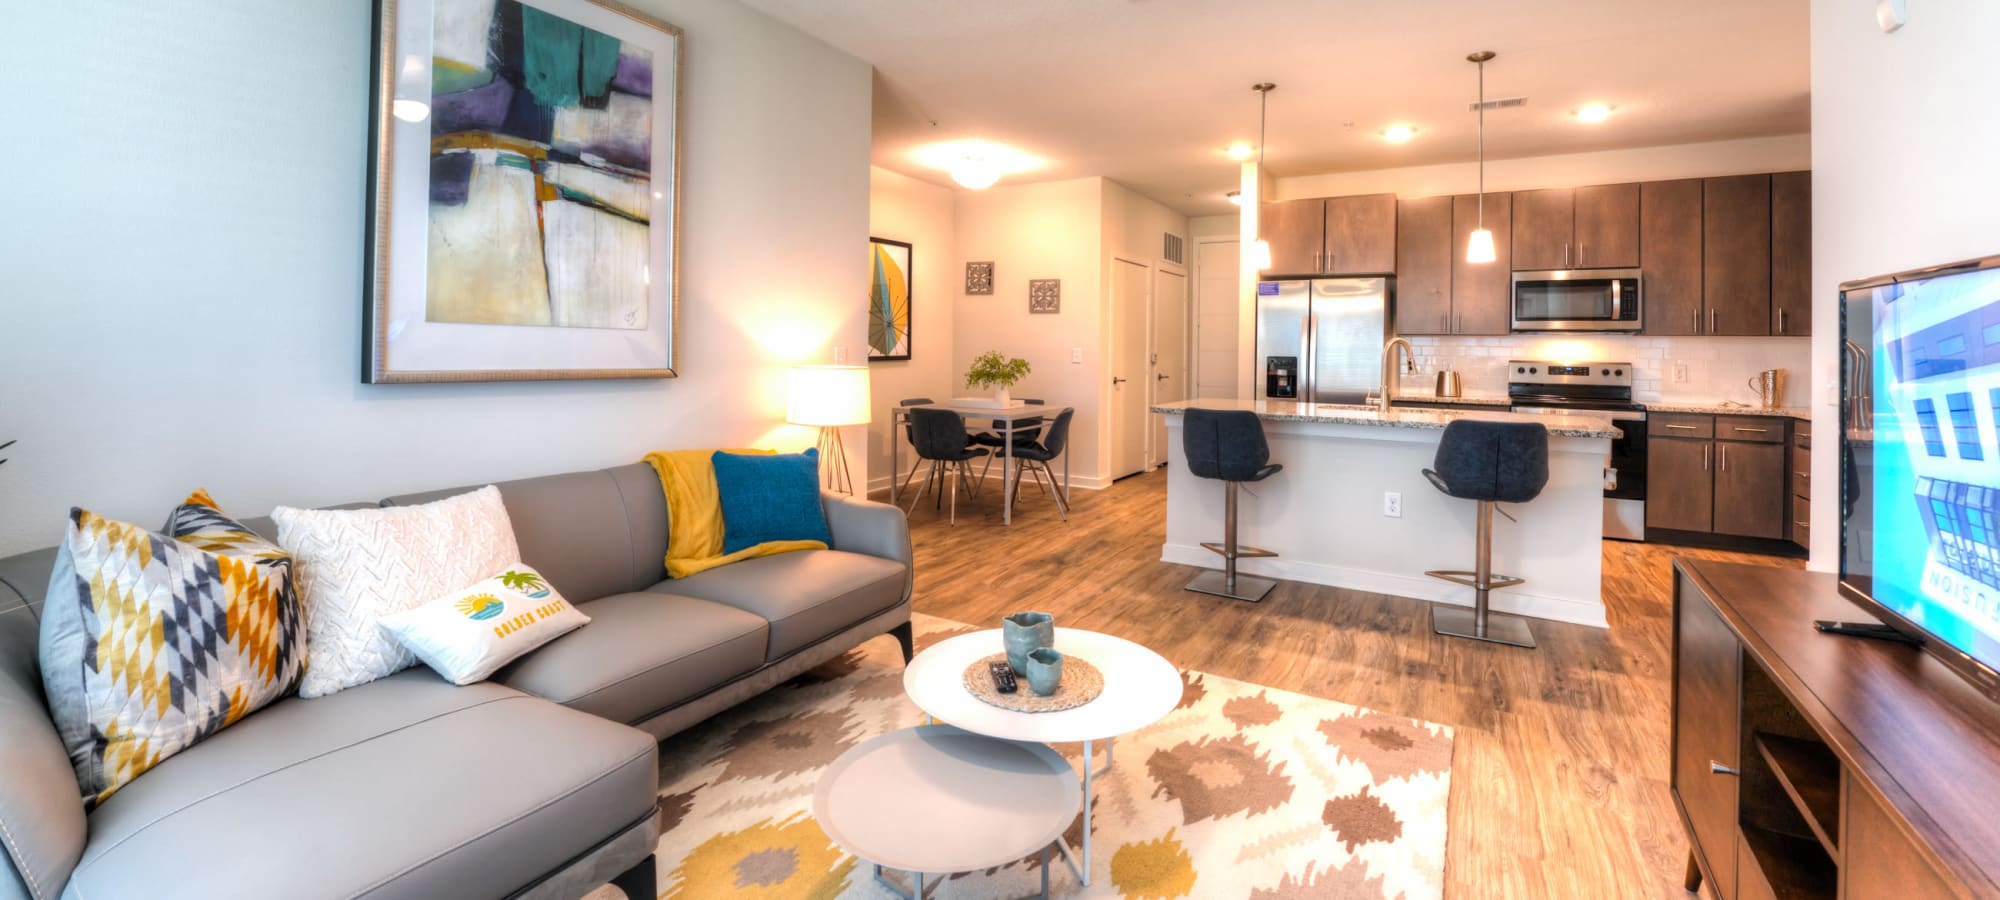 Floor Plans at Fusion in Jacksonville, Florida